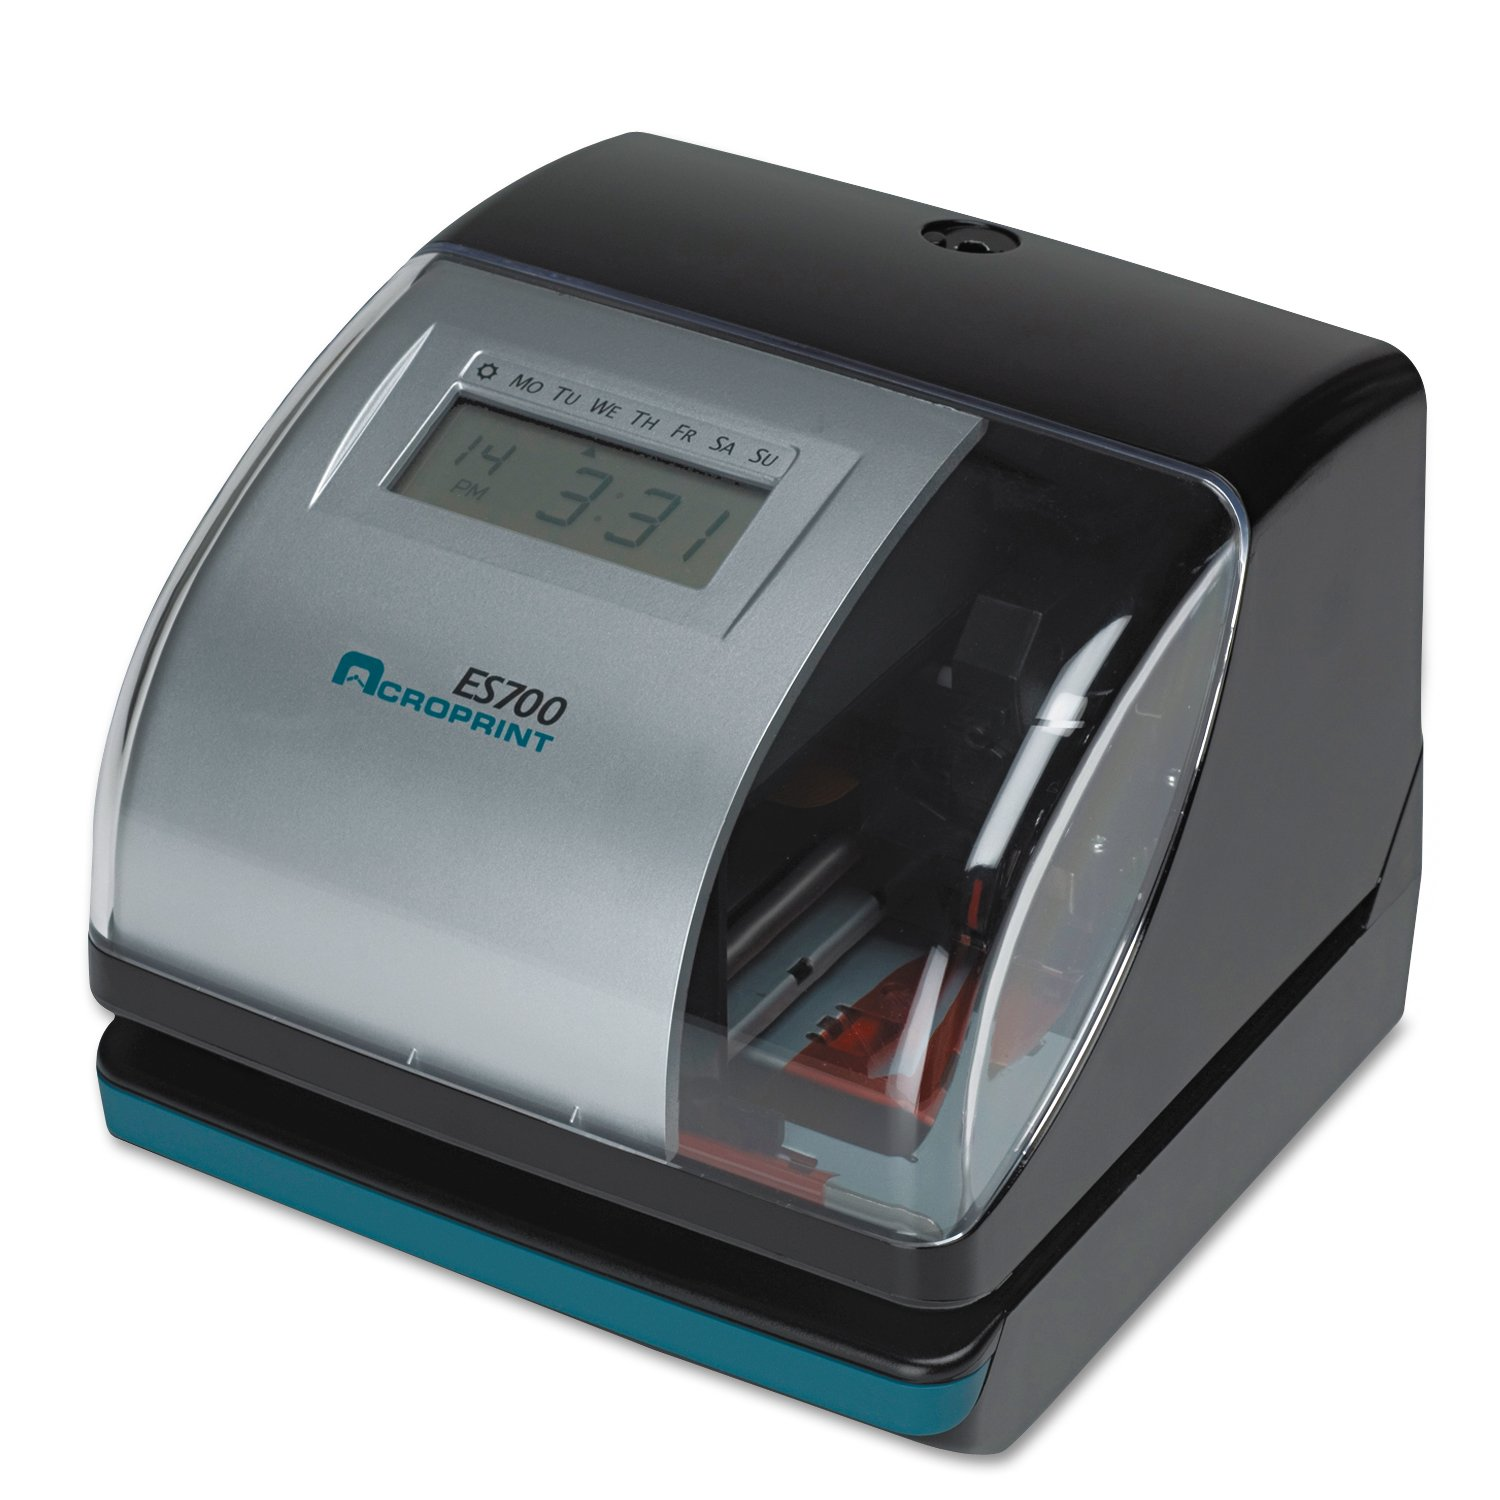 Acroprint 01-0182-000 Model ES700 Electronic Time Recorder, Internal Battery Backup Maintains Time Even During Power Outages, Accommodates Right or Left-hand Time Cards, Selectable Hour Format by Acroprint